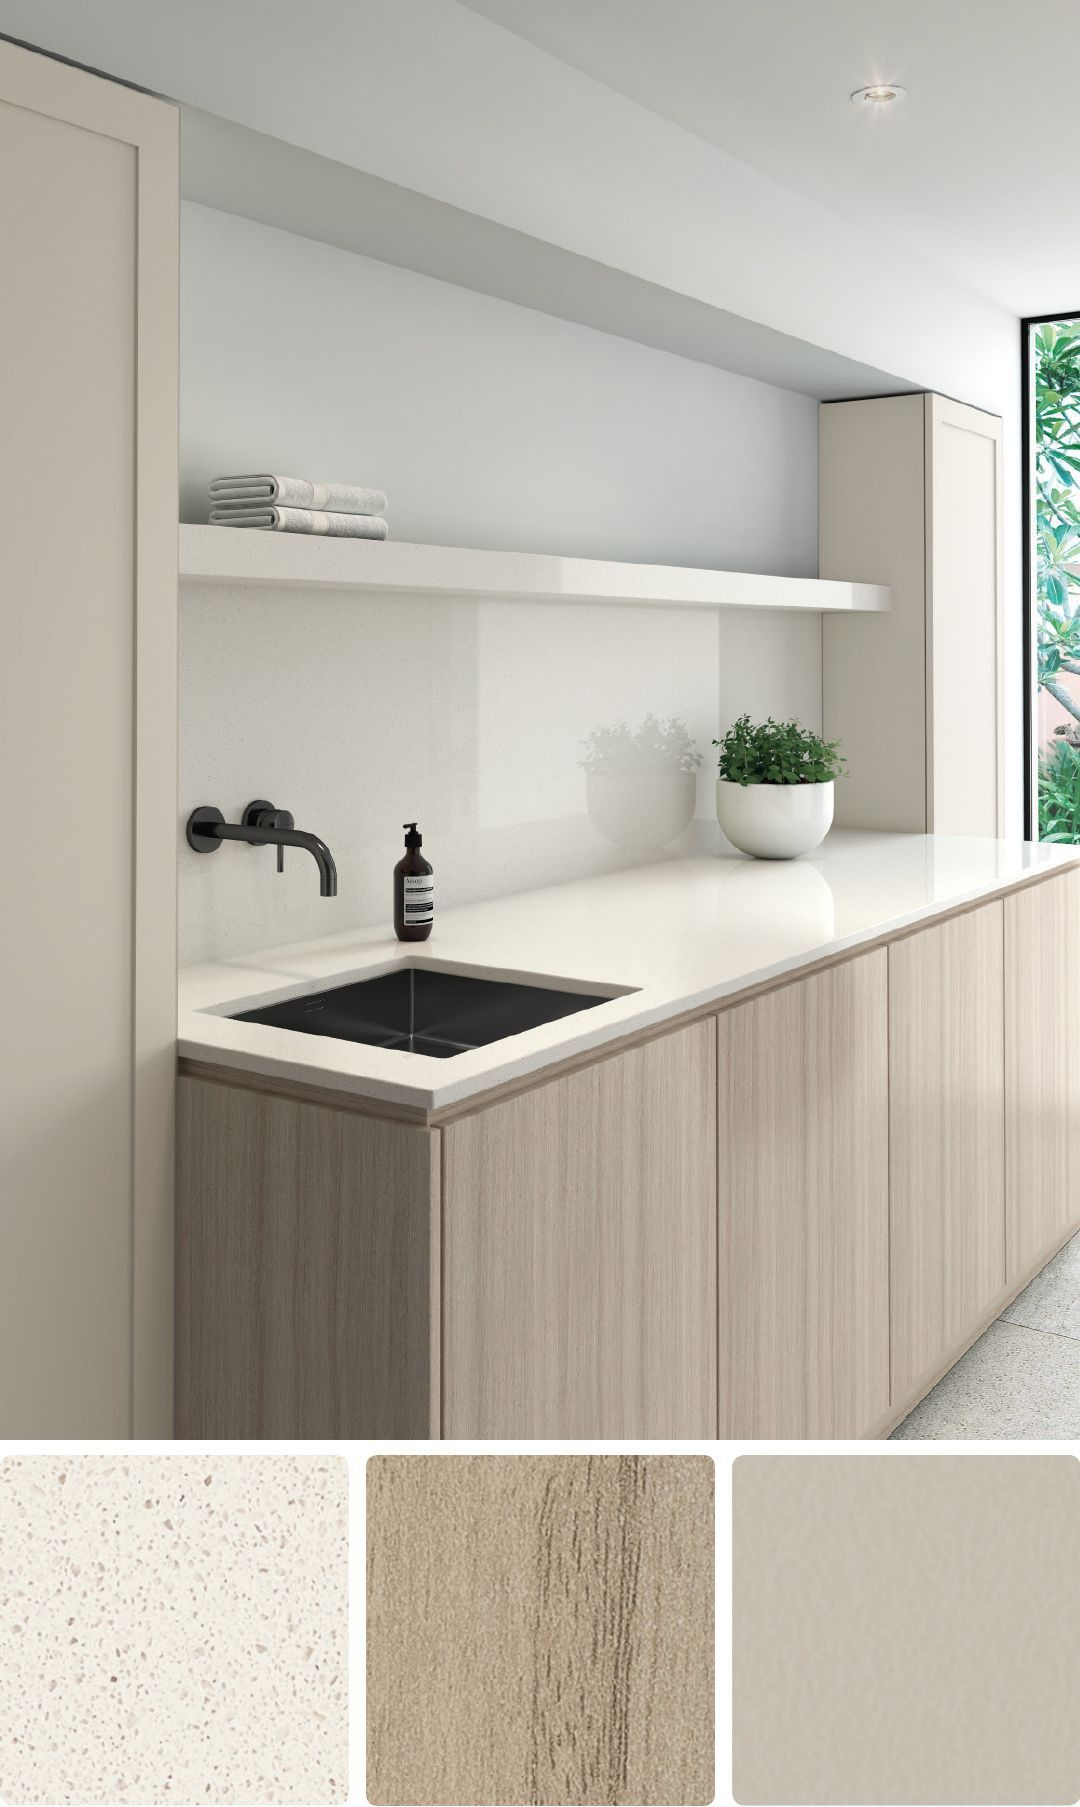 Luxury Interior Design Kitchen Modern Colour Schemes 8 Beautiful White Colour Schemes For Kit In 2020 Laundry In Bathroom Laundry Room Inspiration Laundry Design